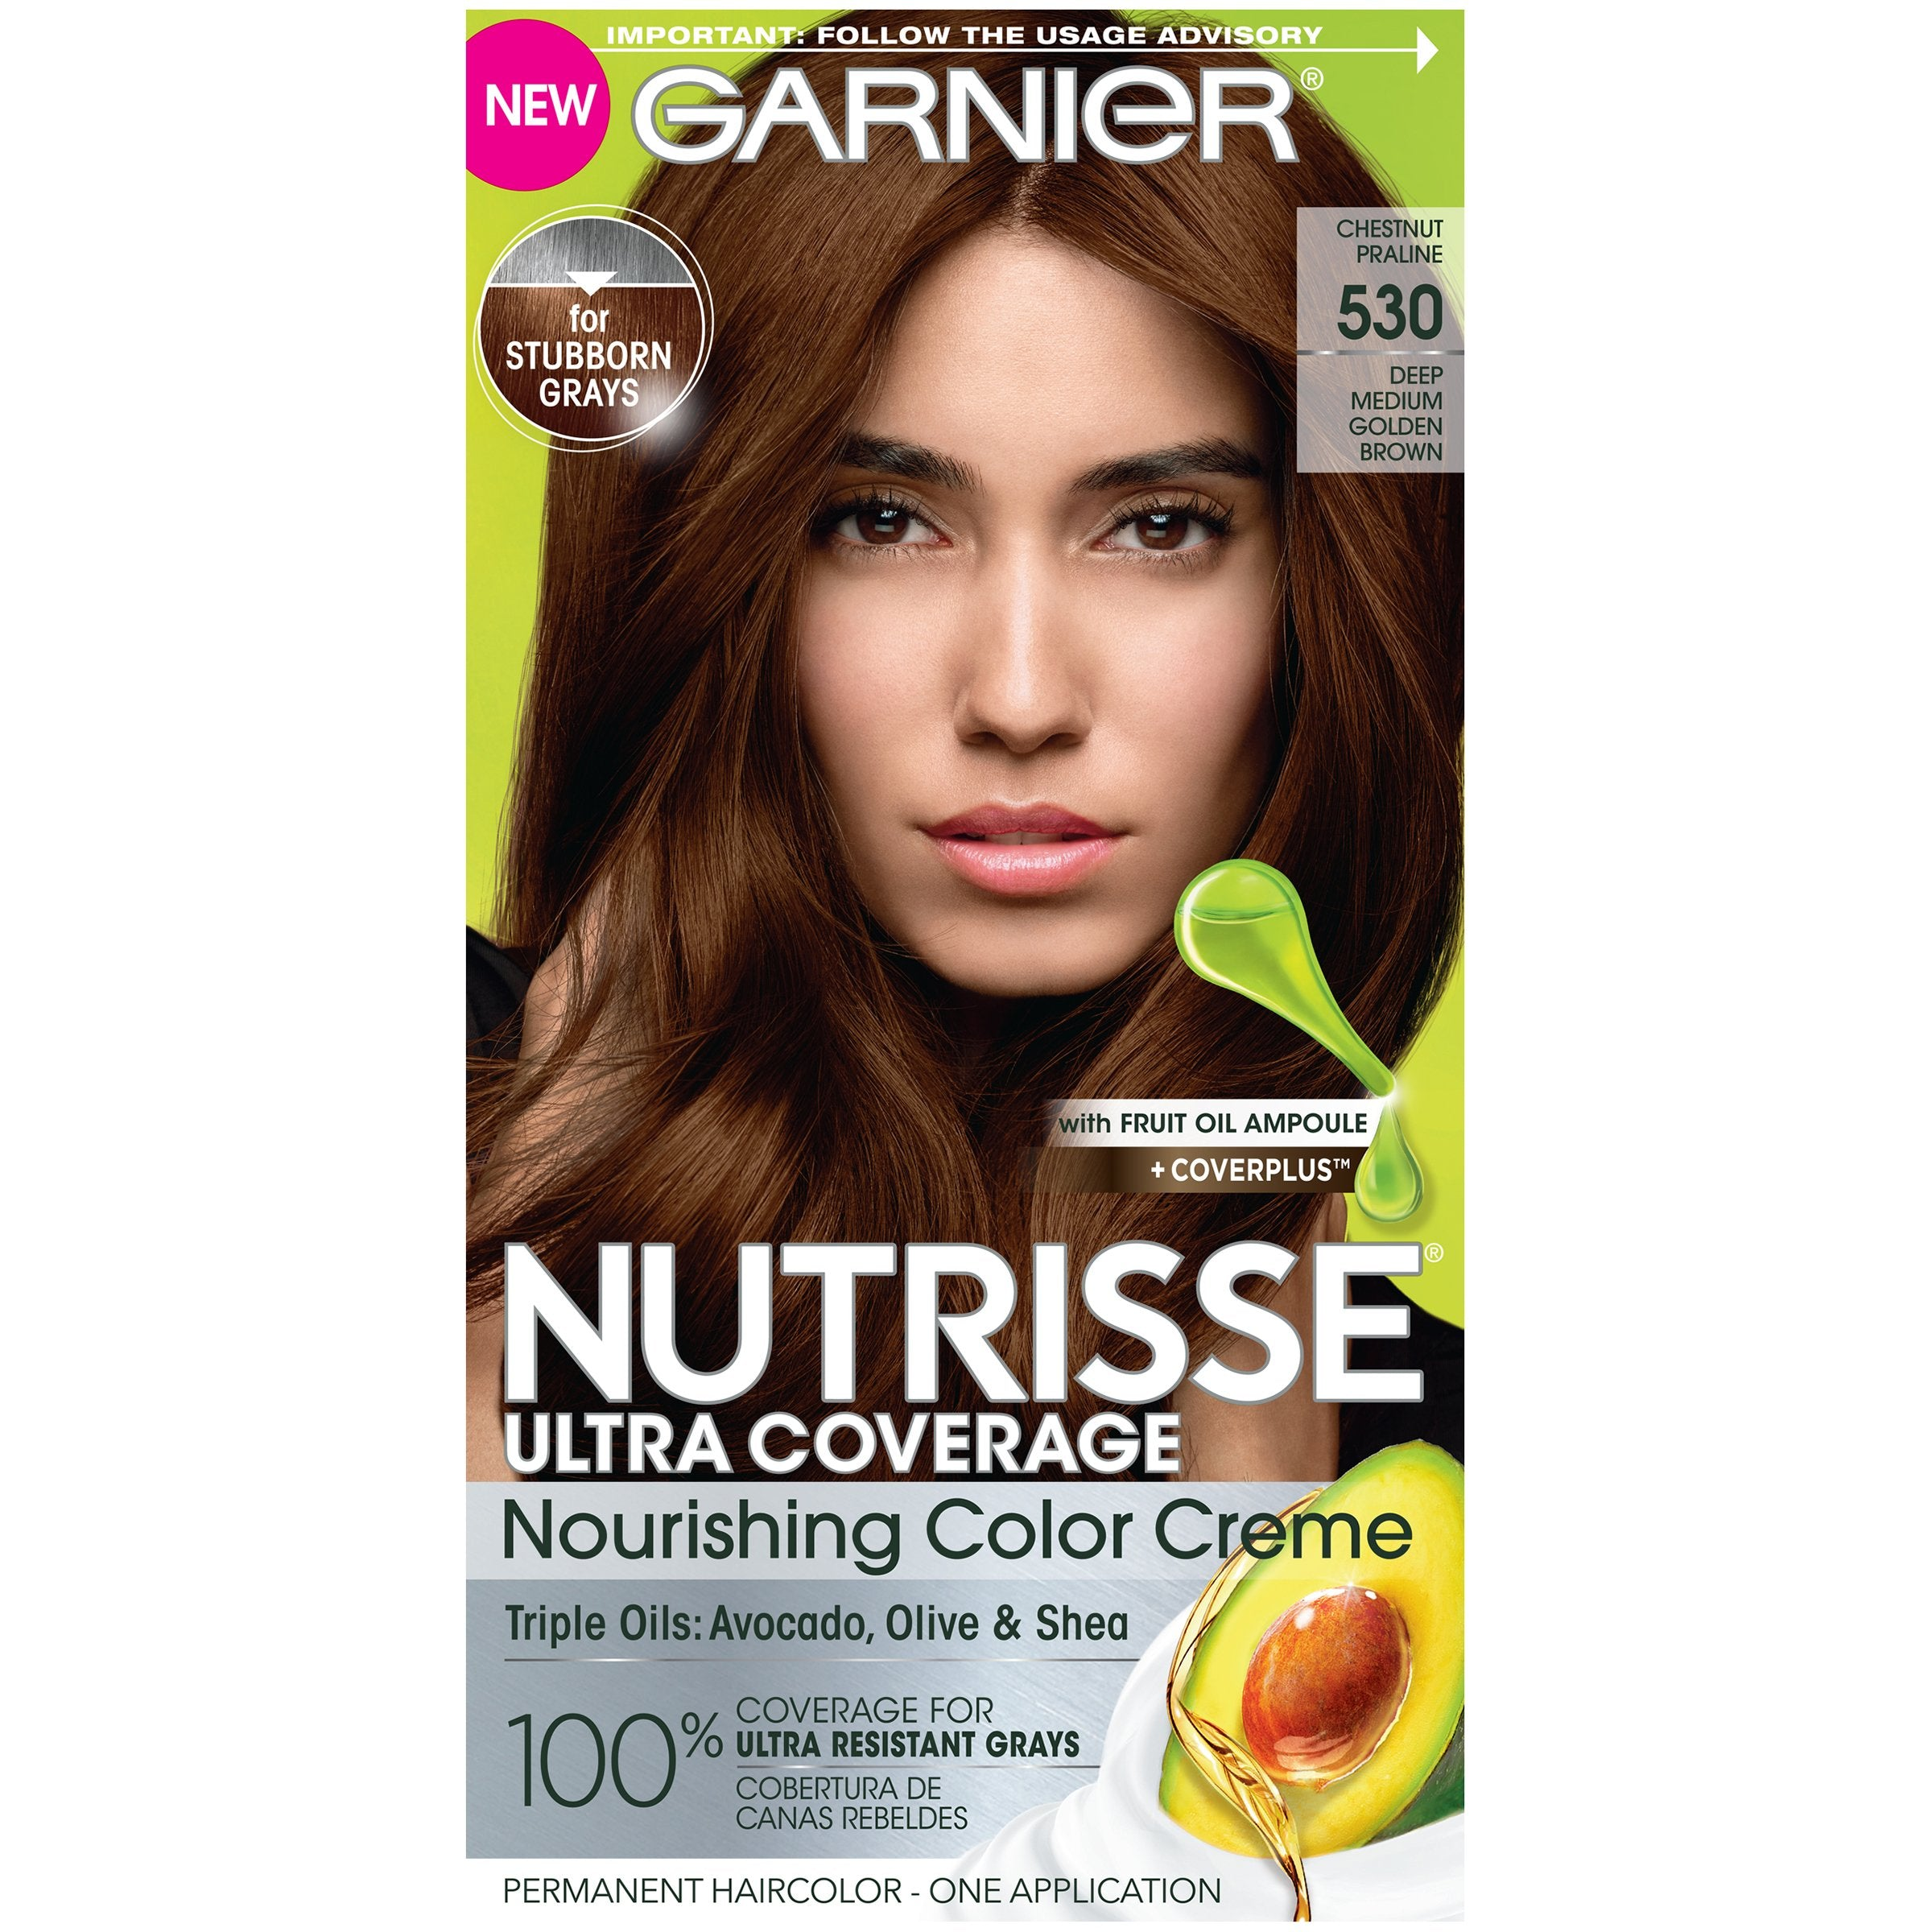 Garnier Nutrisse Ultra Coverage Nourishing Hair Color Creme, Deep Medium Golden Brown (Chestnut Praline) 530, 1 kit-CaribOnline